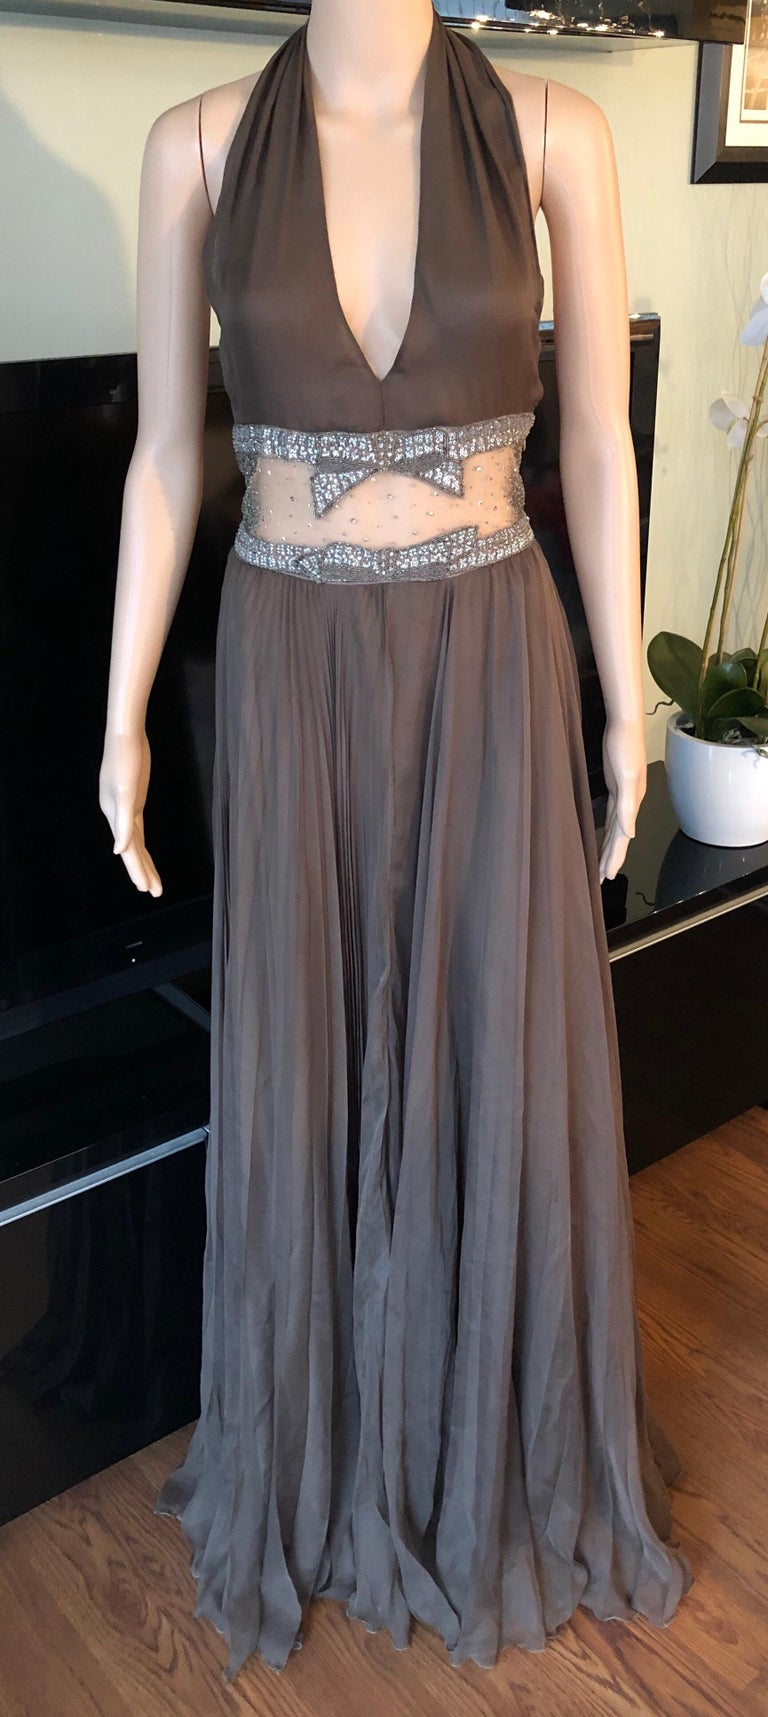 Women's Valentino S/S 2001 Runway Sheer Panel Embellished Brown Dress Gown  For Sale